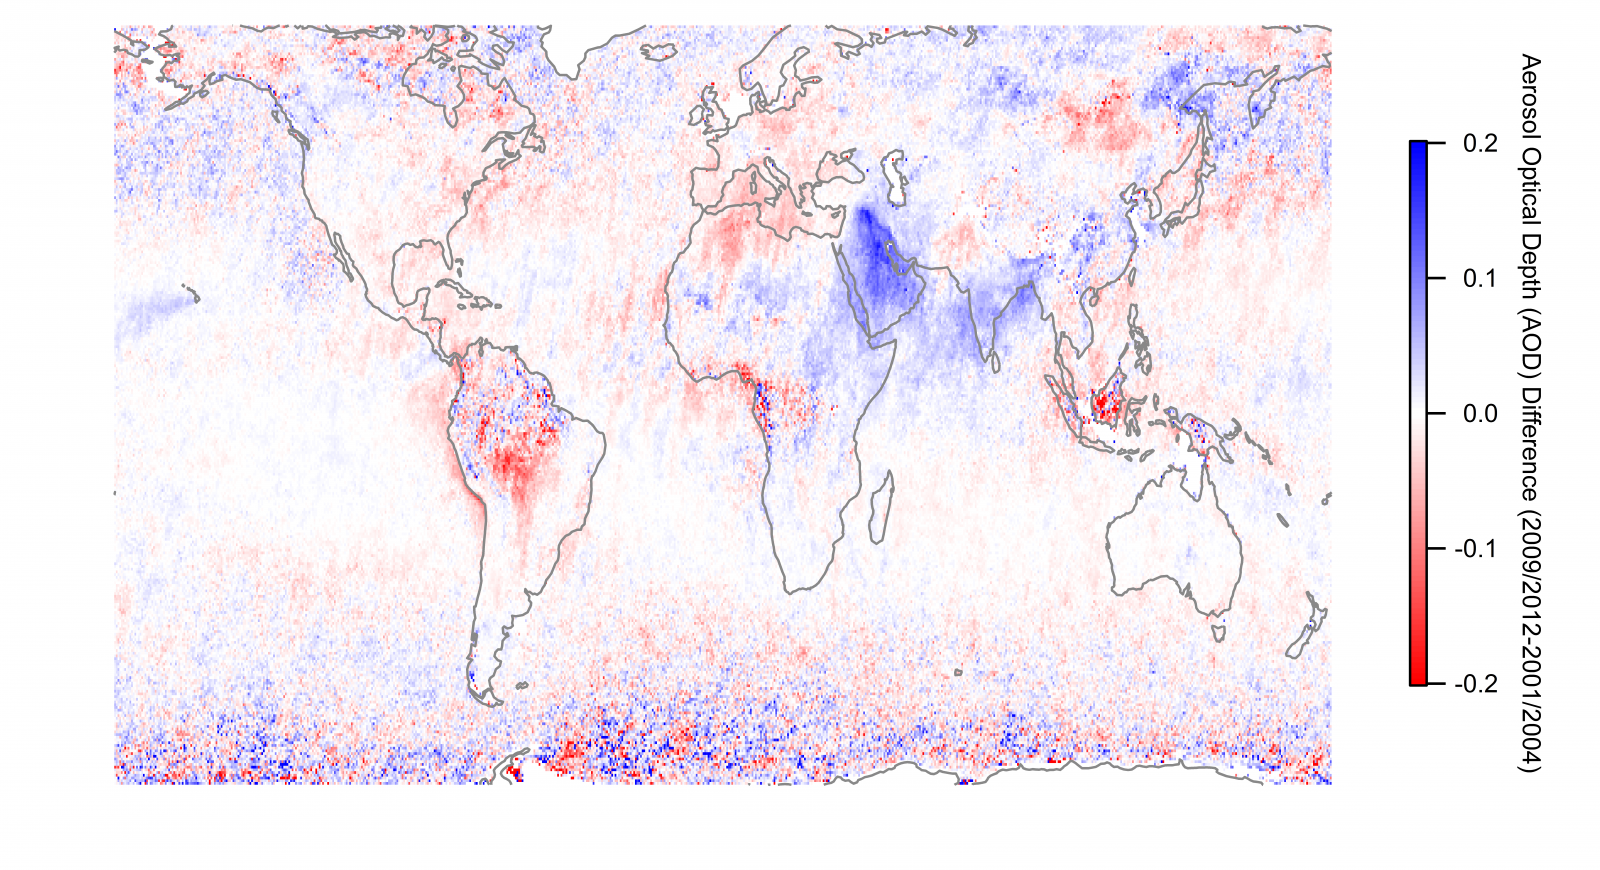 Difference in Aerosol Optical Depth (AOD) from 2009-2012 to 2001-2004. Data source is the same as above. Blue colours indicate an increase in aerosol, while red colours show a decrease.